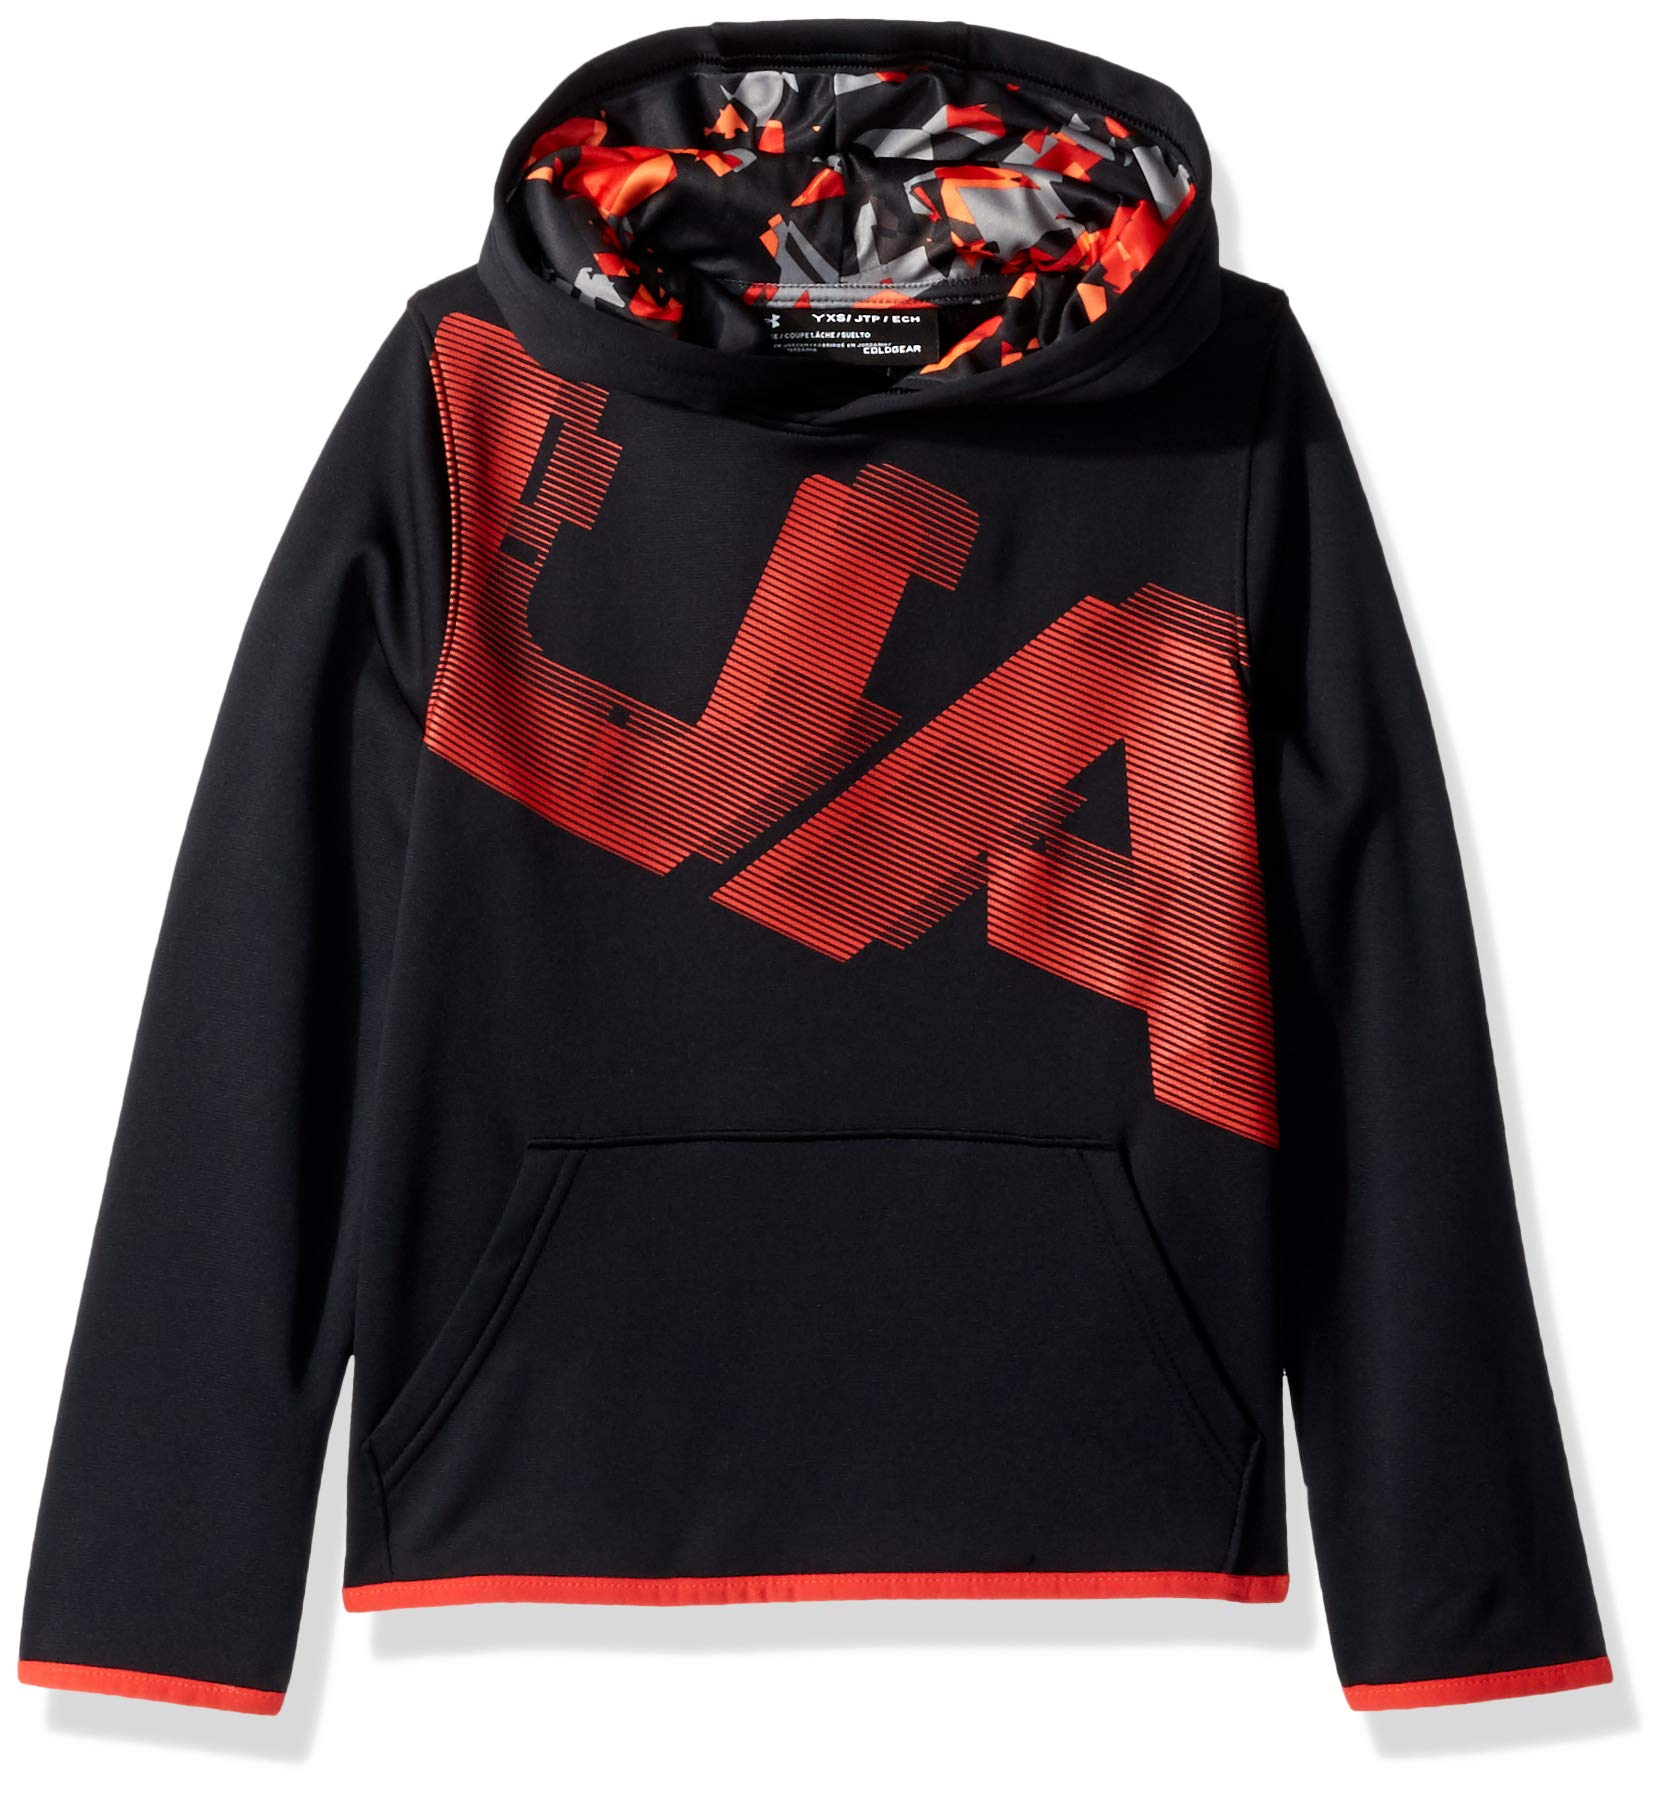 Under Armour Boys Fleece Highlight Printed Hoodie, Black (001)/Radio Red, Youth X-Large by Under Armour